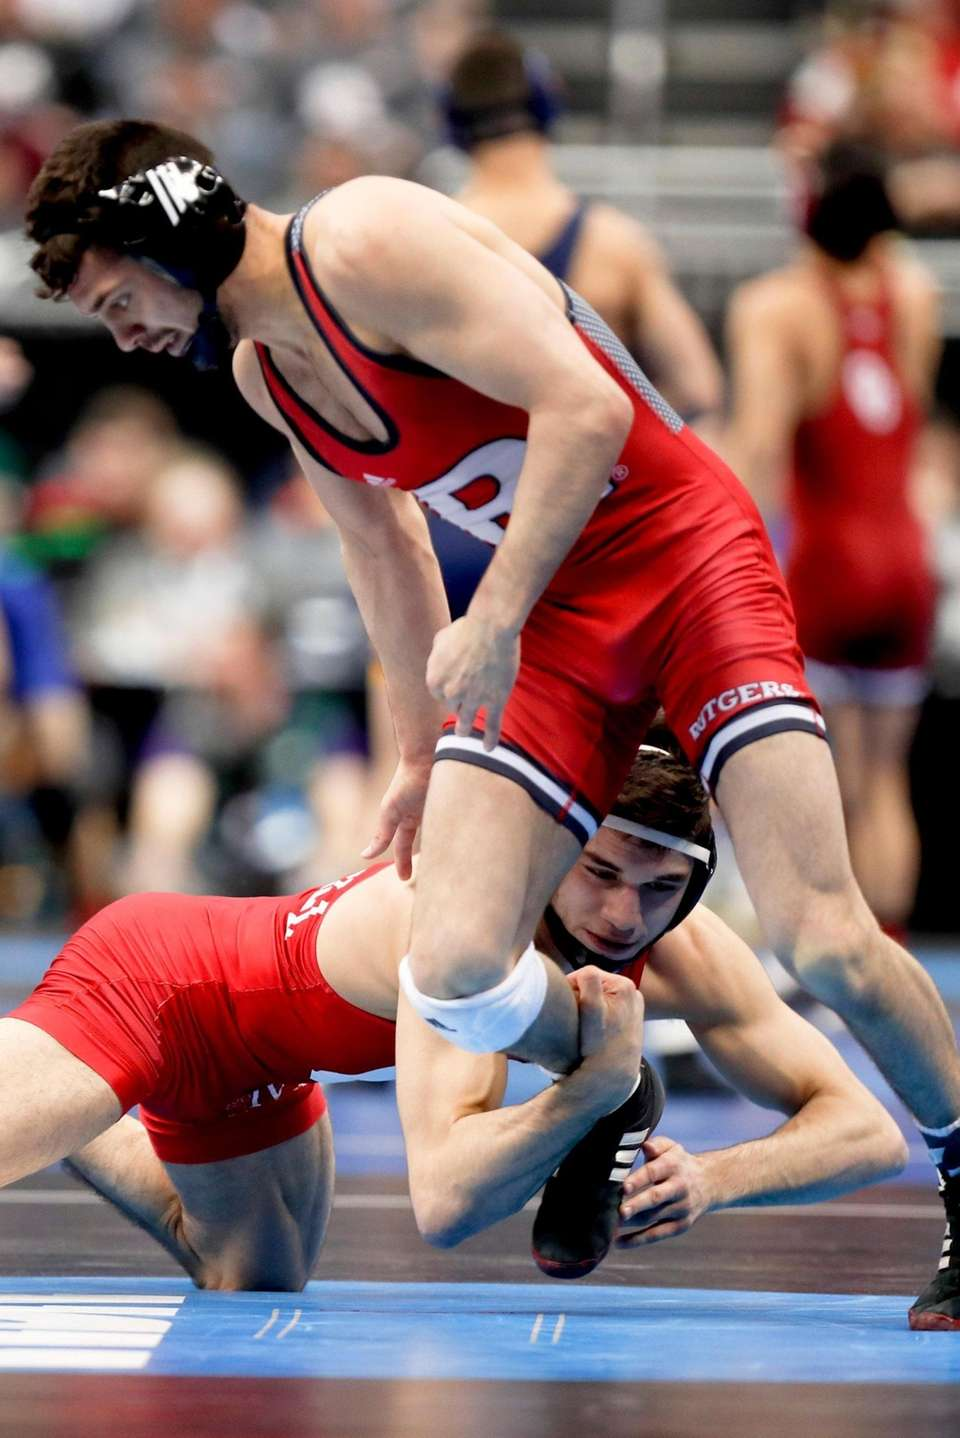 Cornell's Yianni Diakomihalis, bottom, grabs the leg of